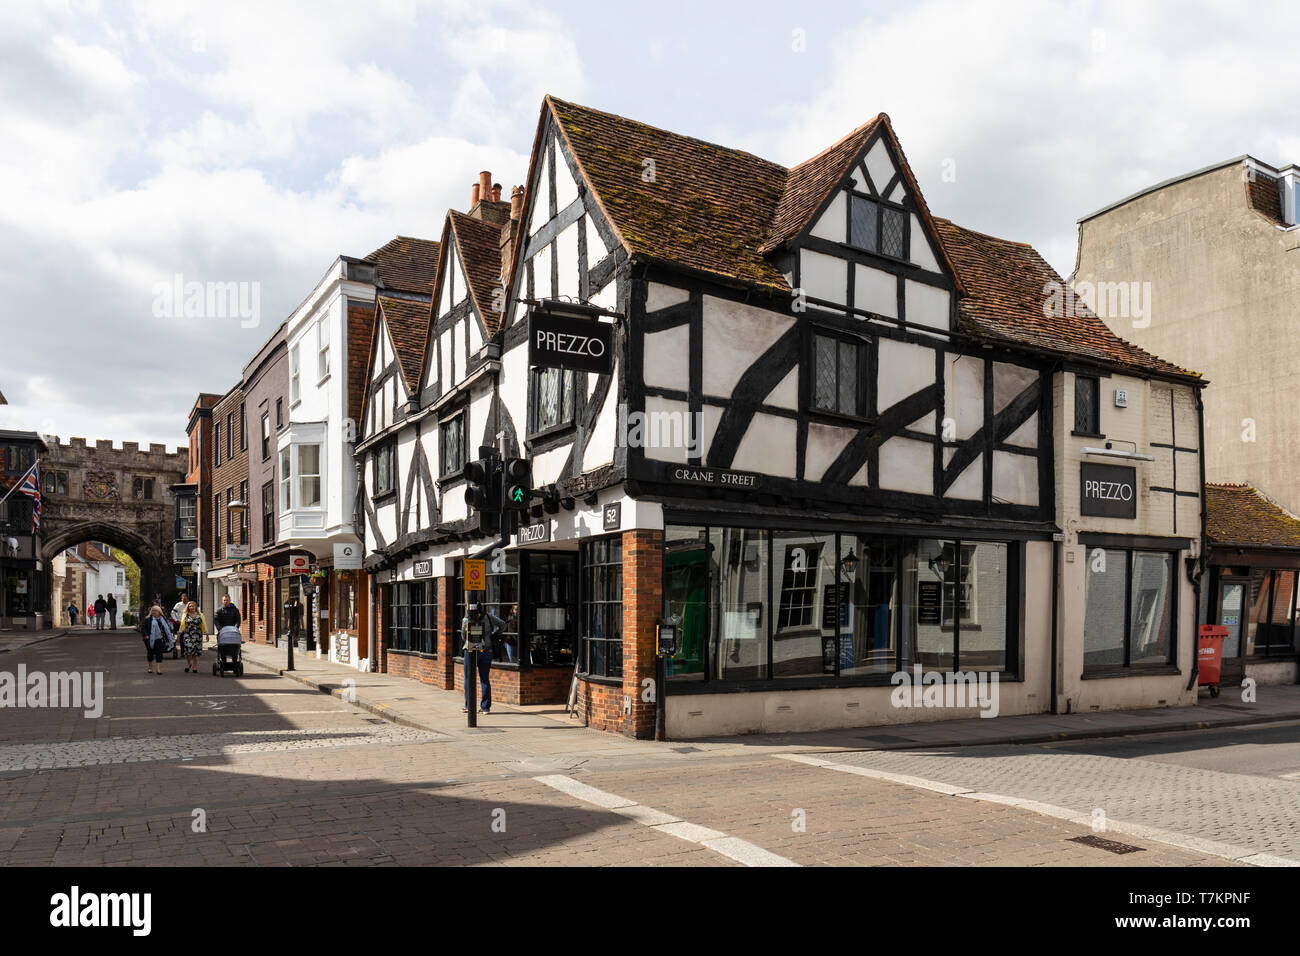 Prezzo Italian Restaurant in  a Grade II* Listed Building situated in Salisbury High Street, Wiltshire, UK - Stock Image